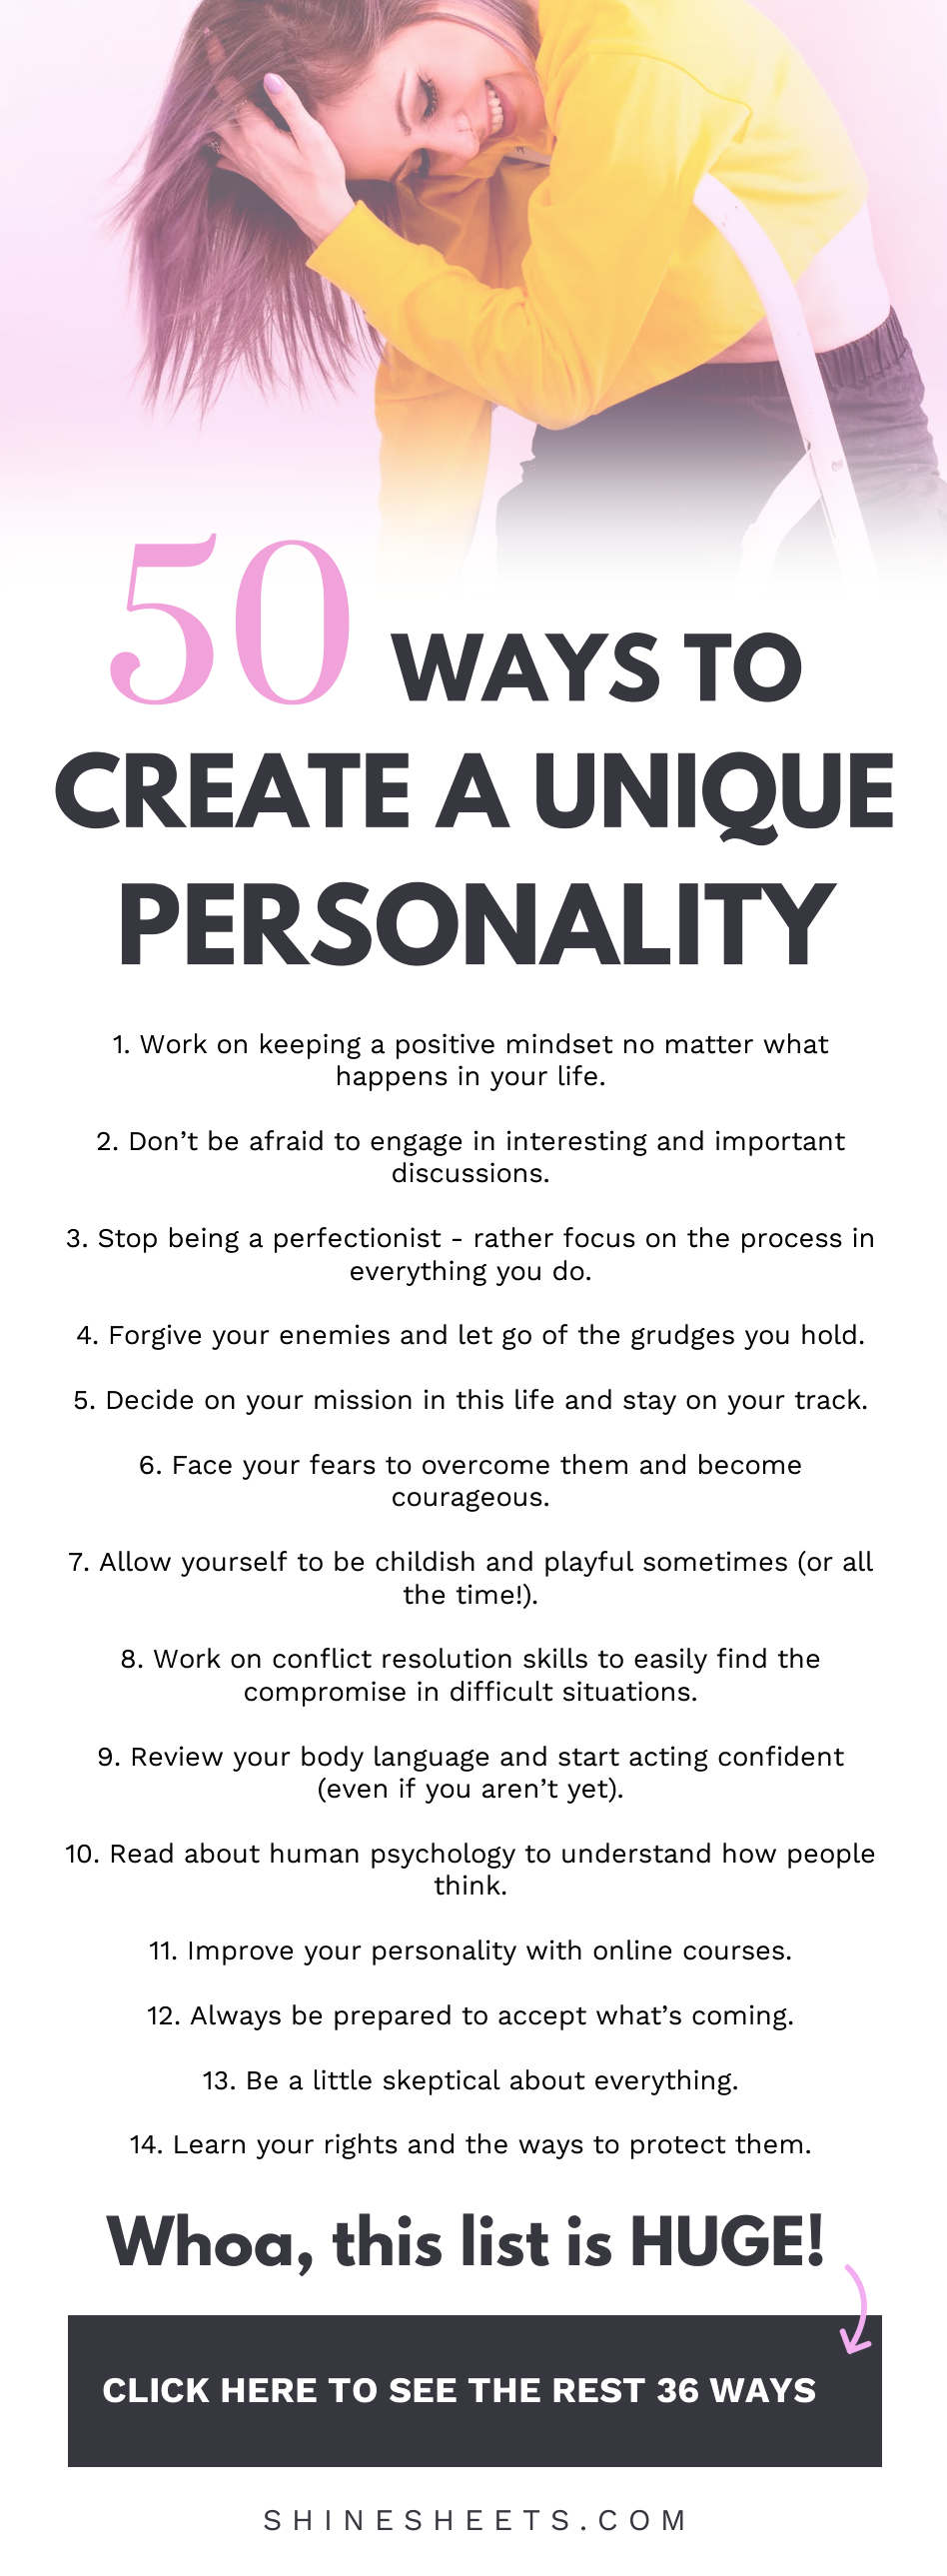 50 Ways To Create a Unique Personality #personalgrowth